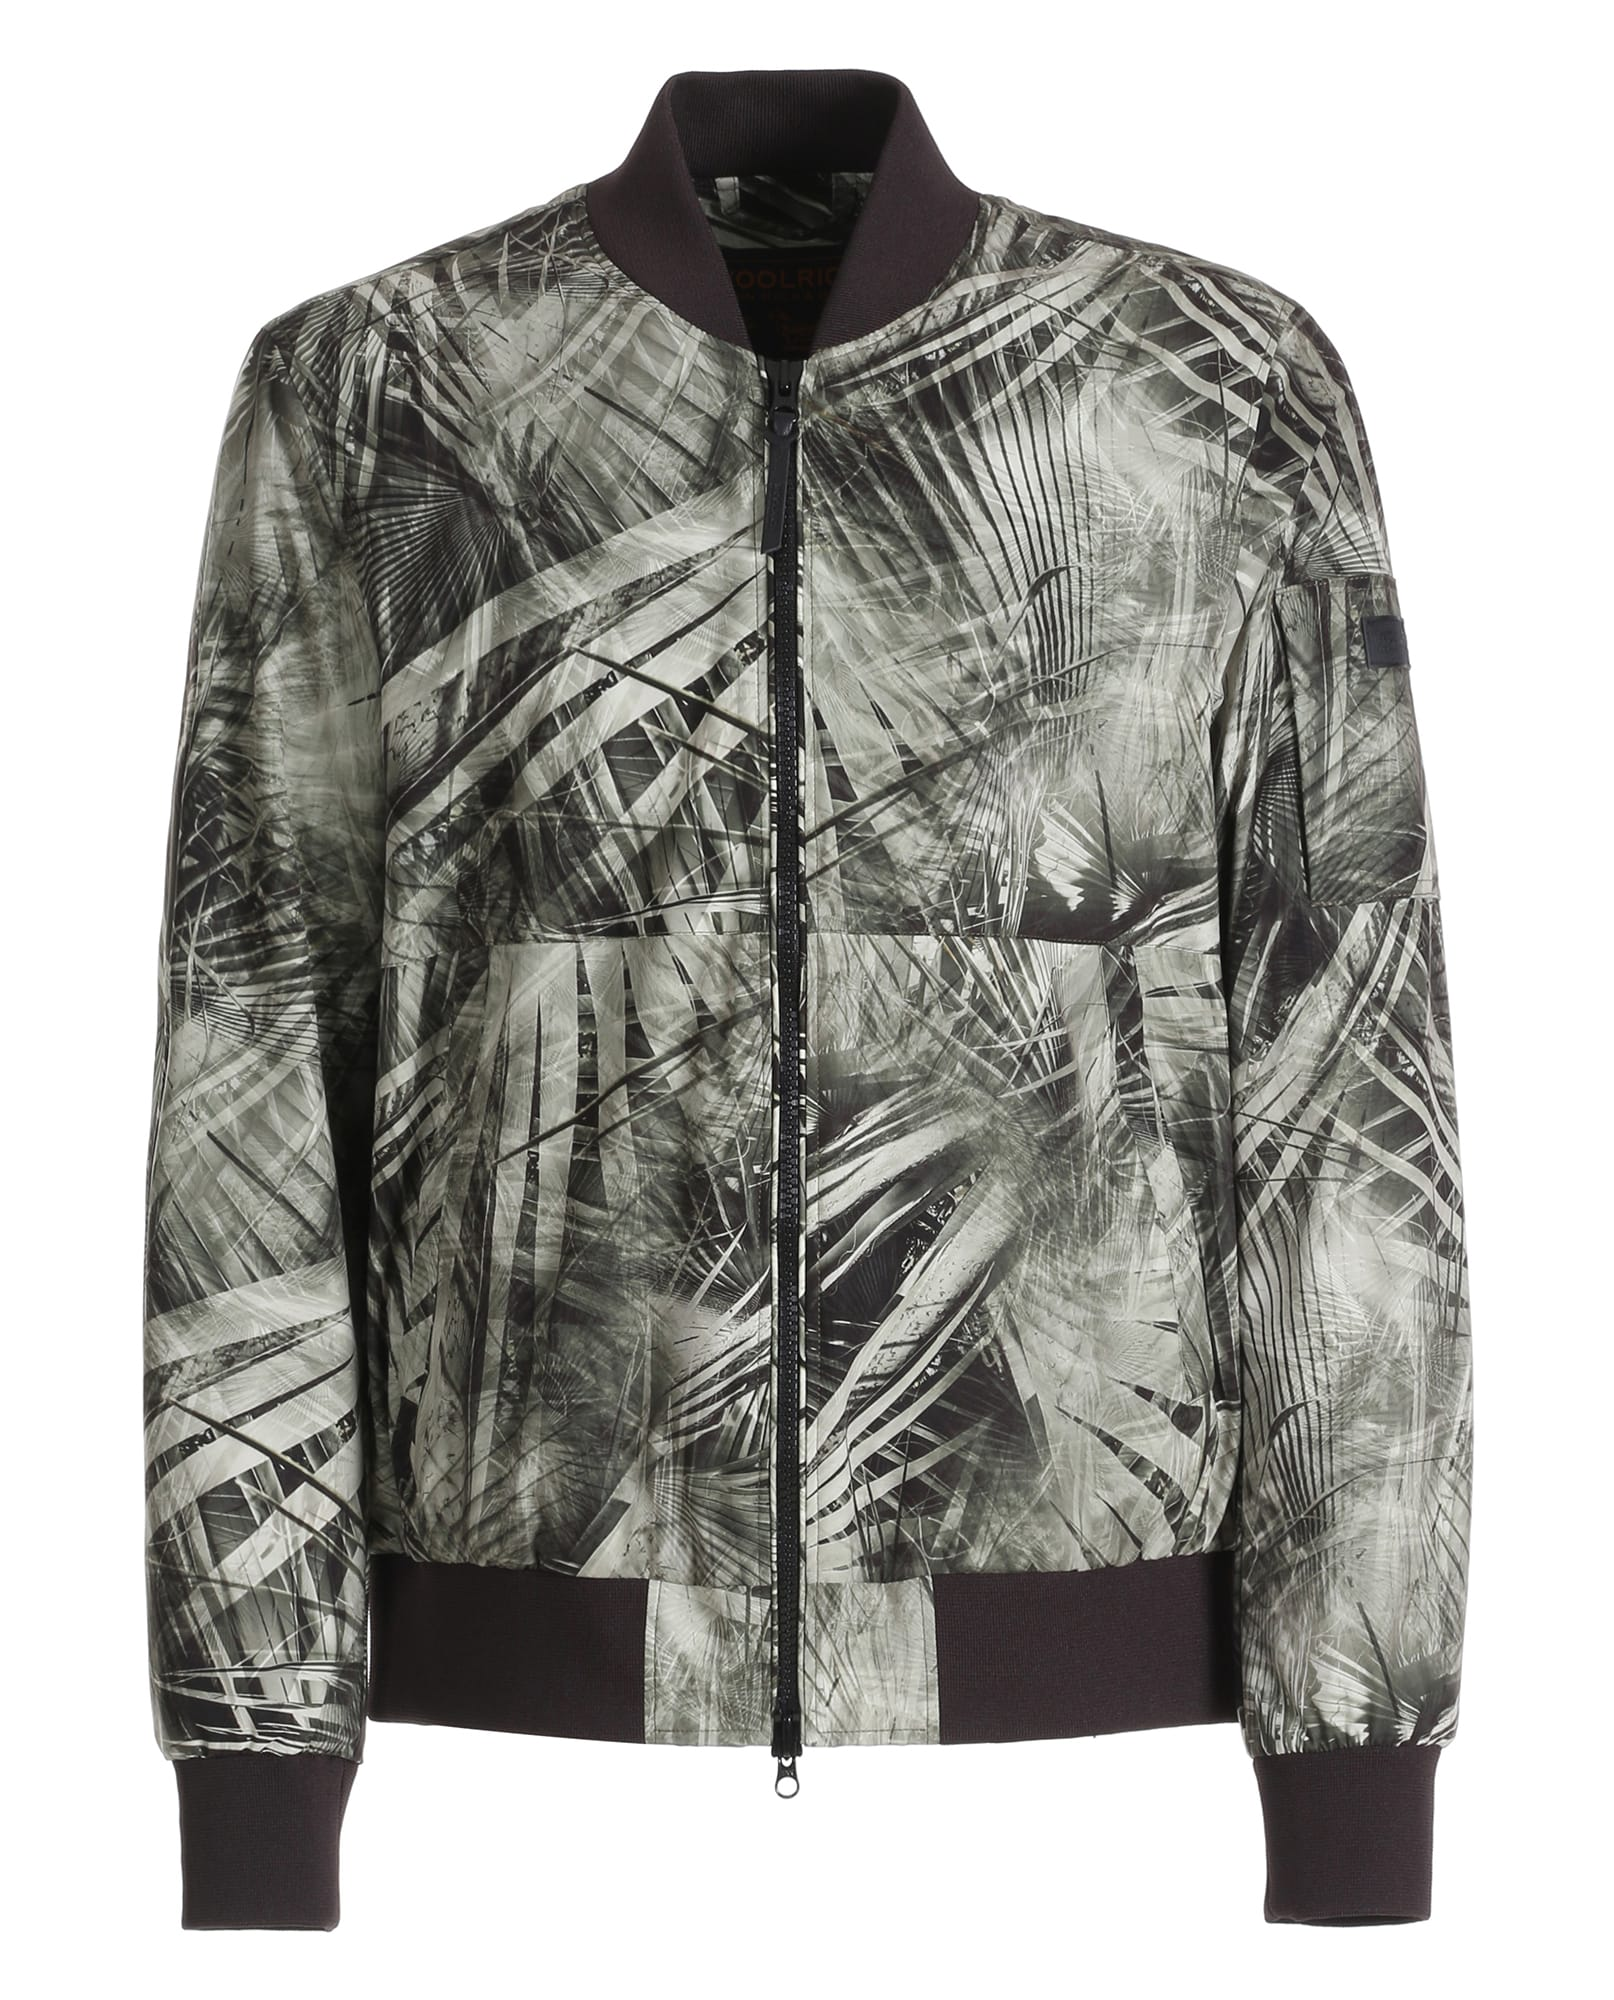 EAGLE PRINTED BOMBER